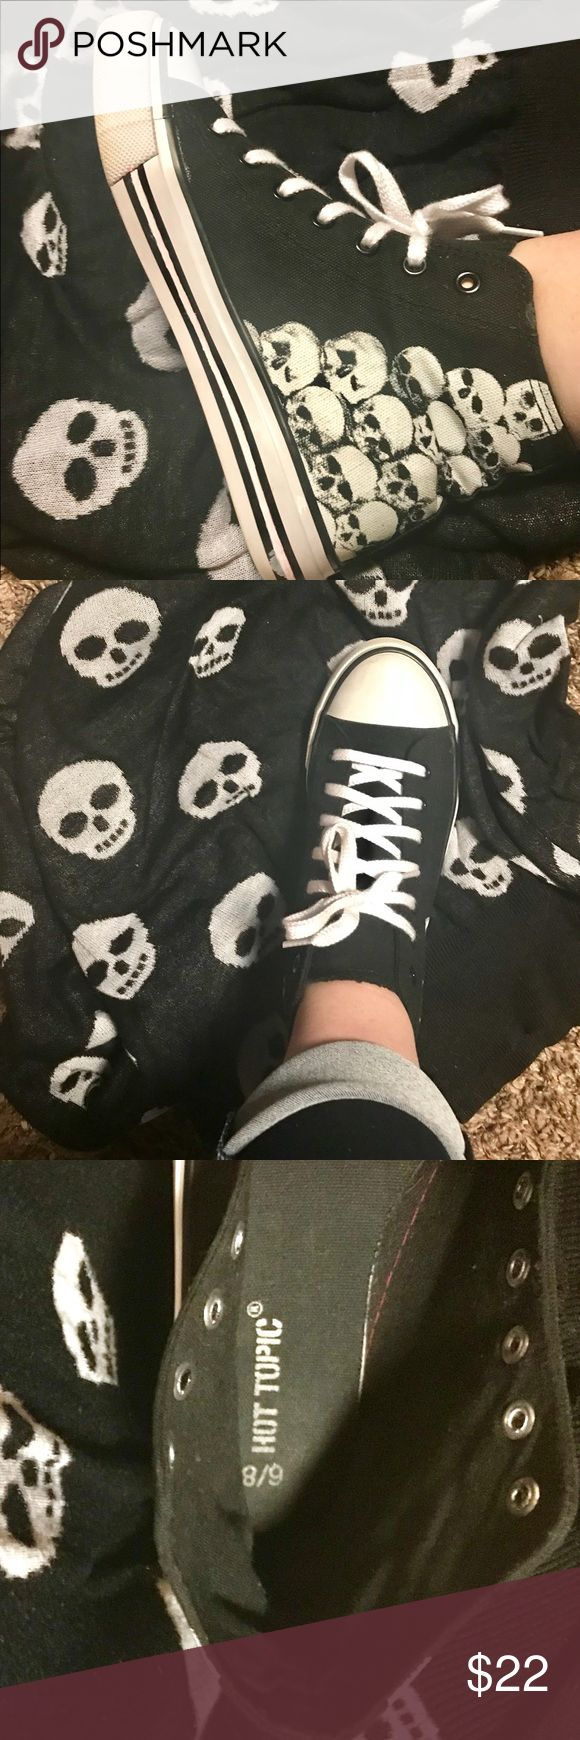 Women's hi-Top Sneakers Bring out the goth in all of us and indulge in these grunge style skull kicks. Have only been worn a handful of times. Almost perfectly clean besides the bottoms are not perfect and my son drew a red line on the inner sole of the right shoe but I cleaned it and covered up w a nail polish pen the best I could. Other than that, they are like new. Hot Topic Shoes Sneakers